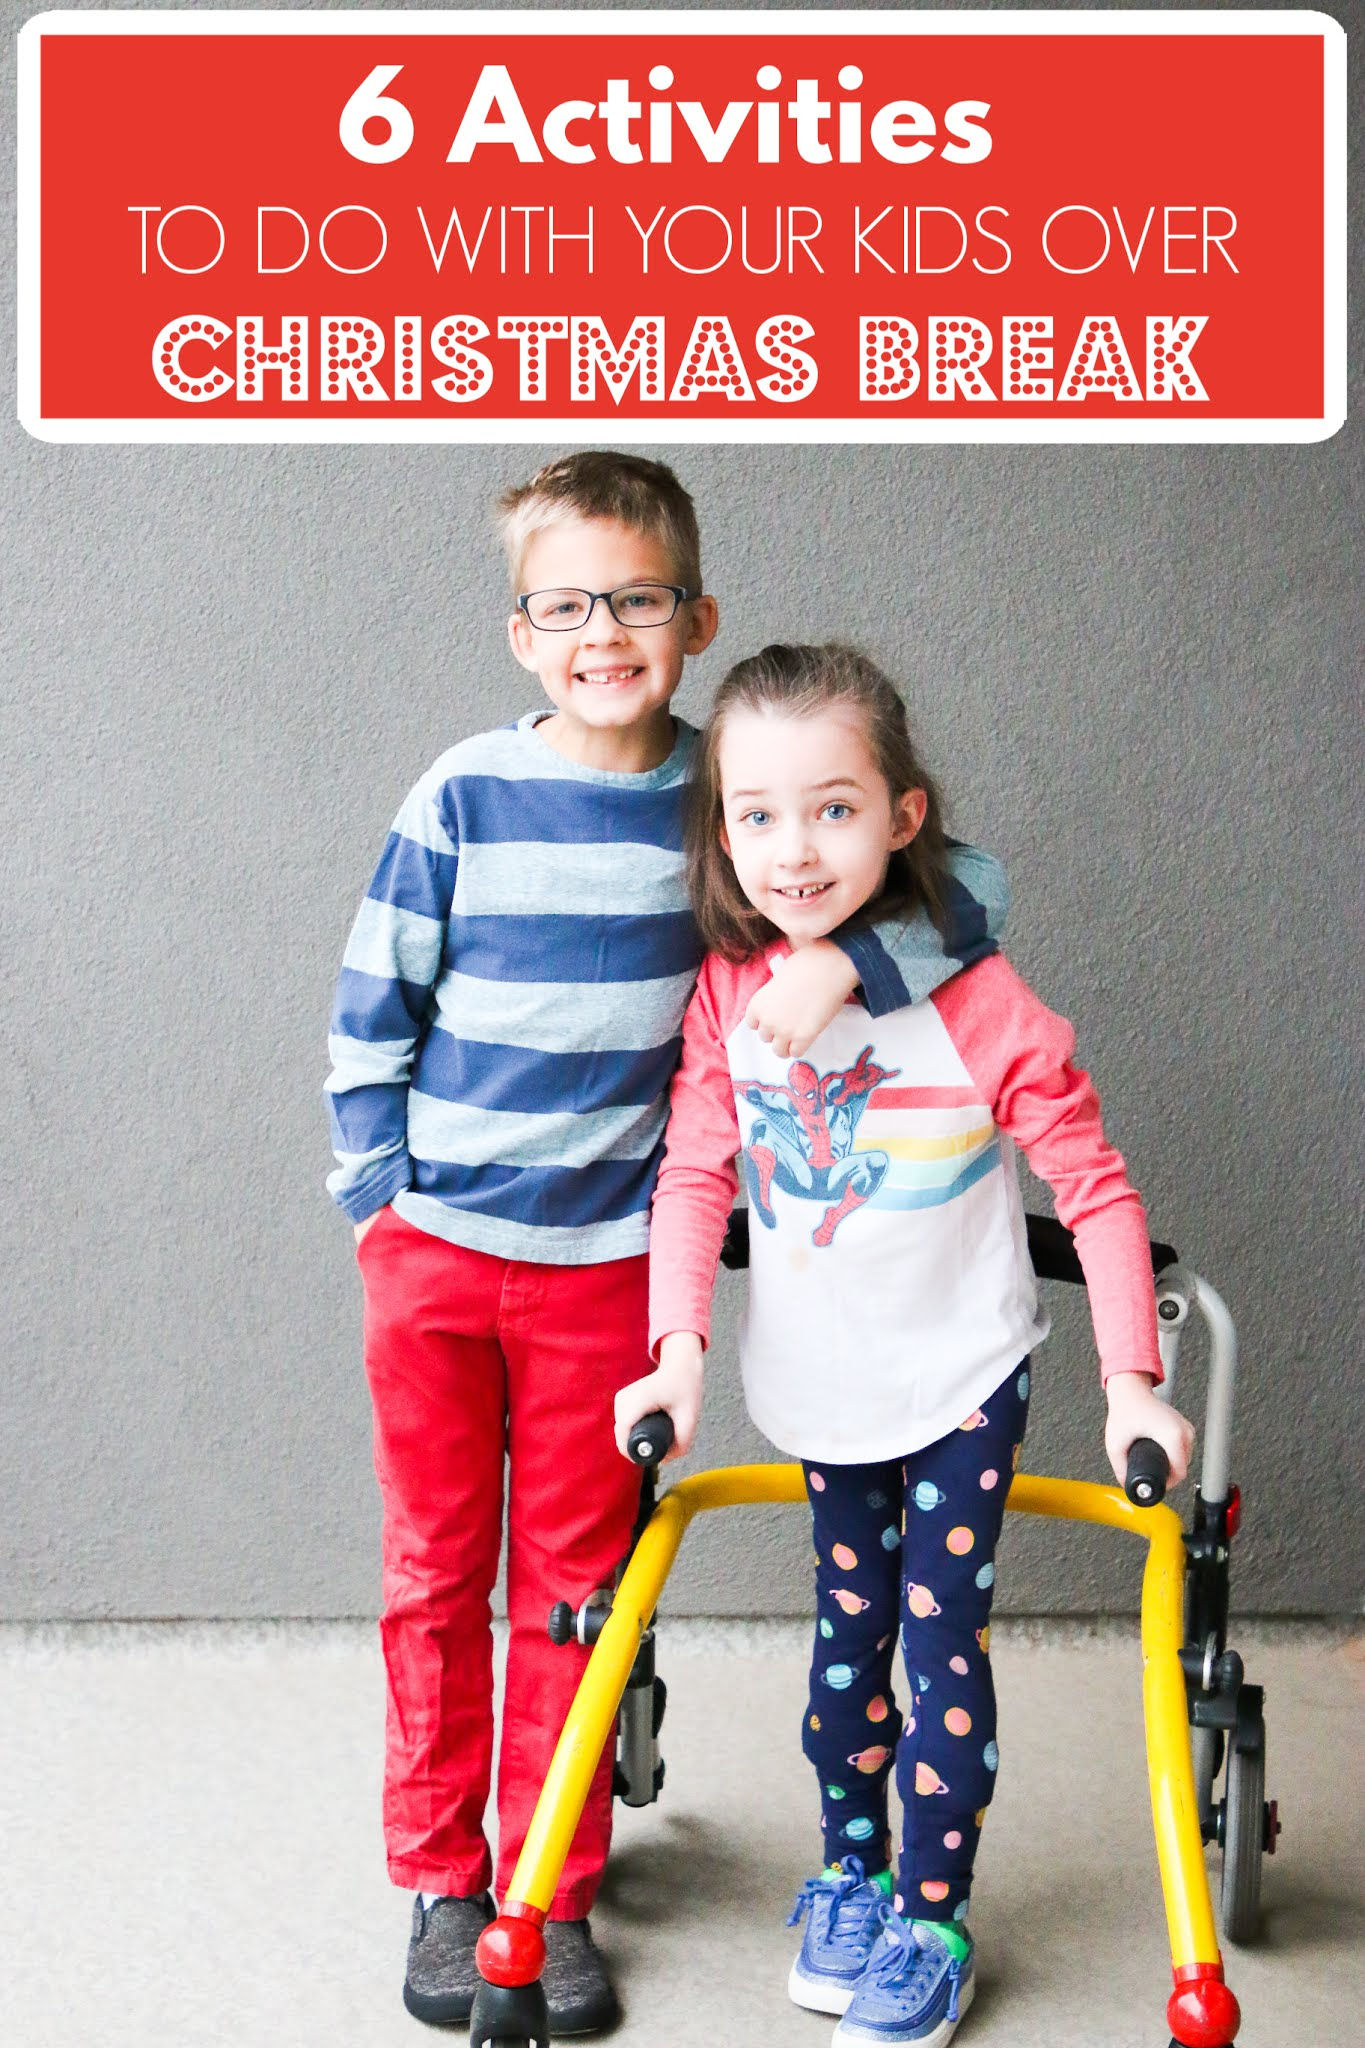 Winter break activities near me. Winter break ideas for college students. Things to do over break with friends. Winter activities for kids. Winter vacation activities. Winter break ideas for families. Winter break camps near me. Winter break activities for middle schoolers. #winter #christmas #Kids #fun #familyfun #winterbreak